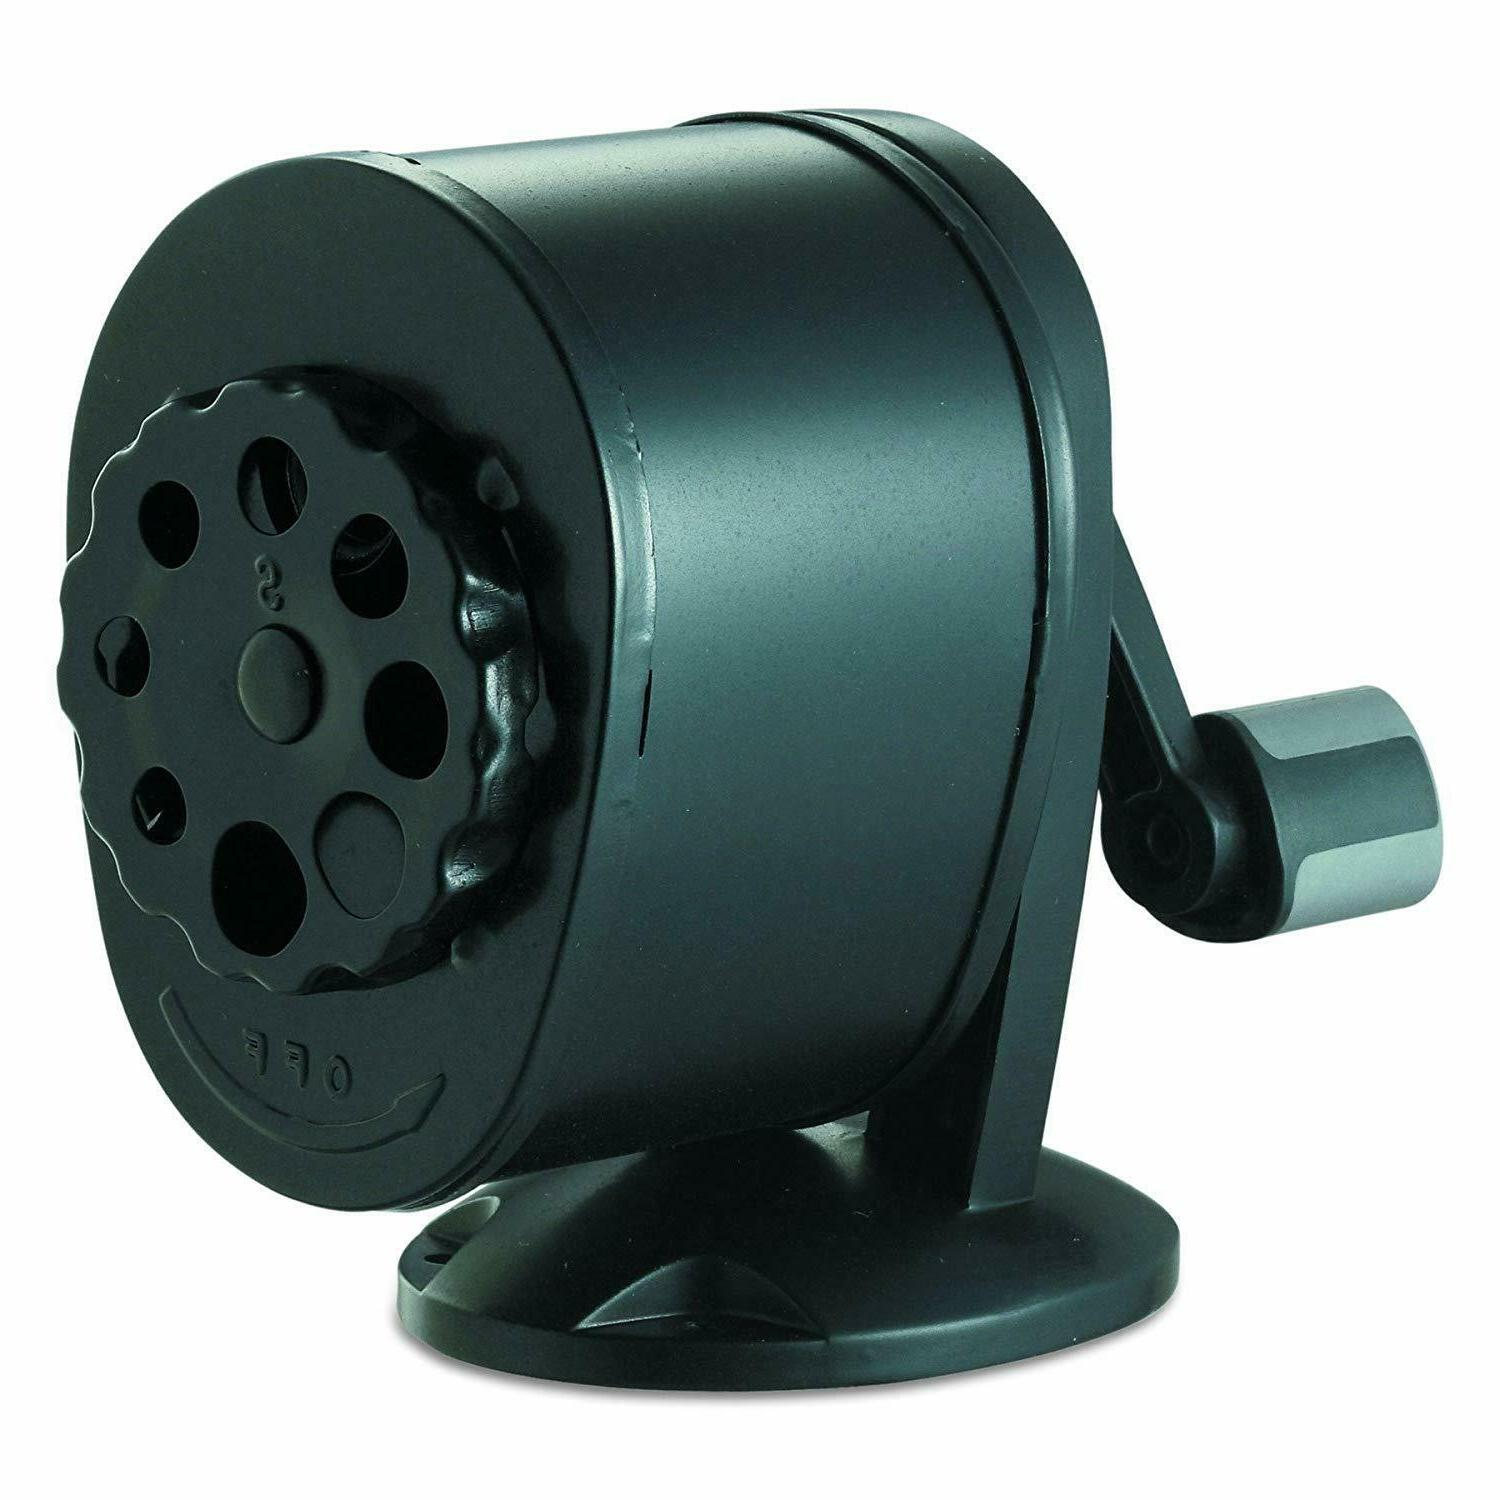 Bostitch Pencil Sharpener, Black NEW +